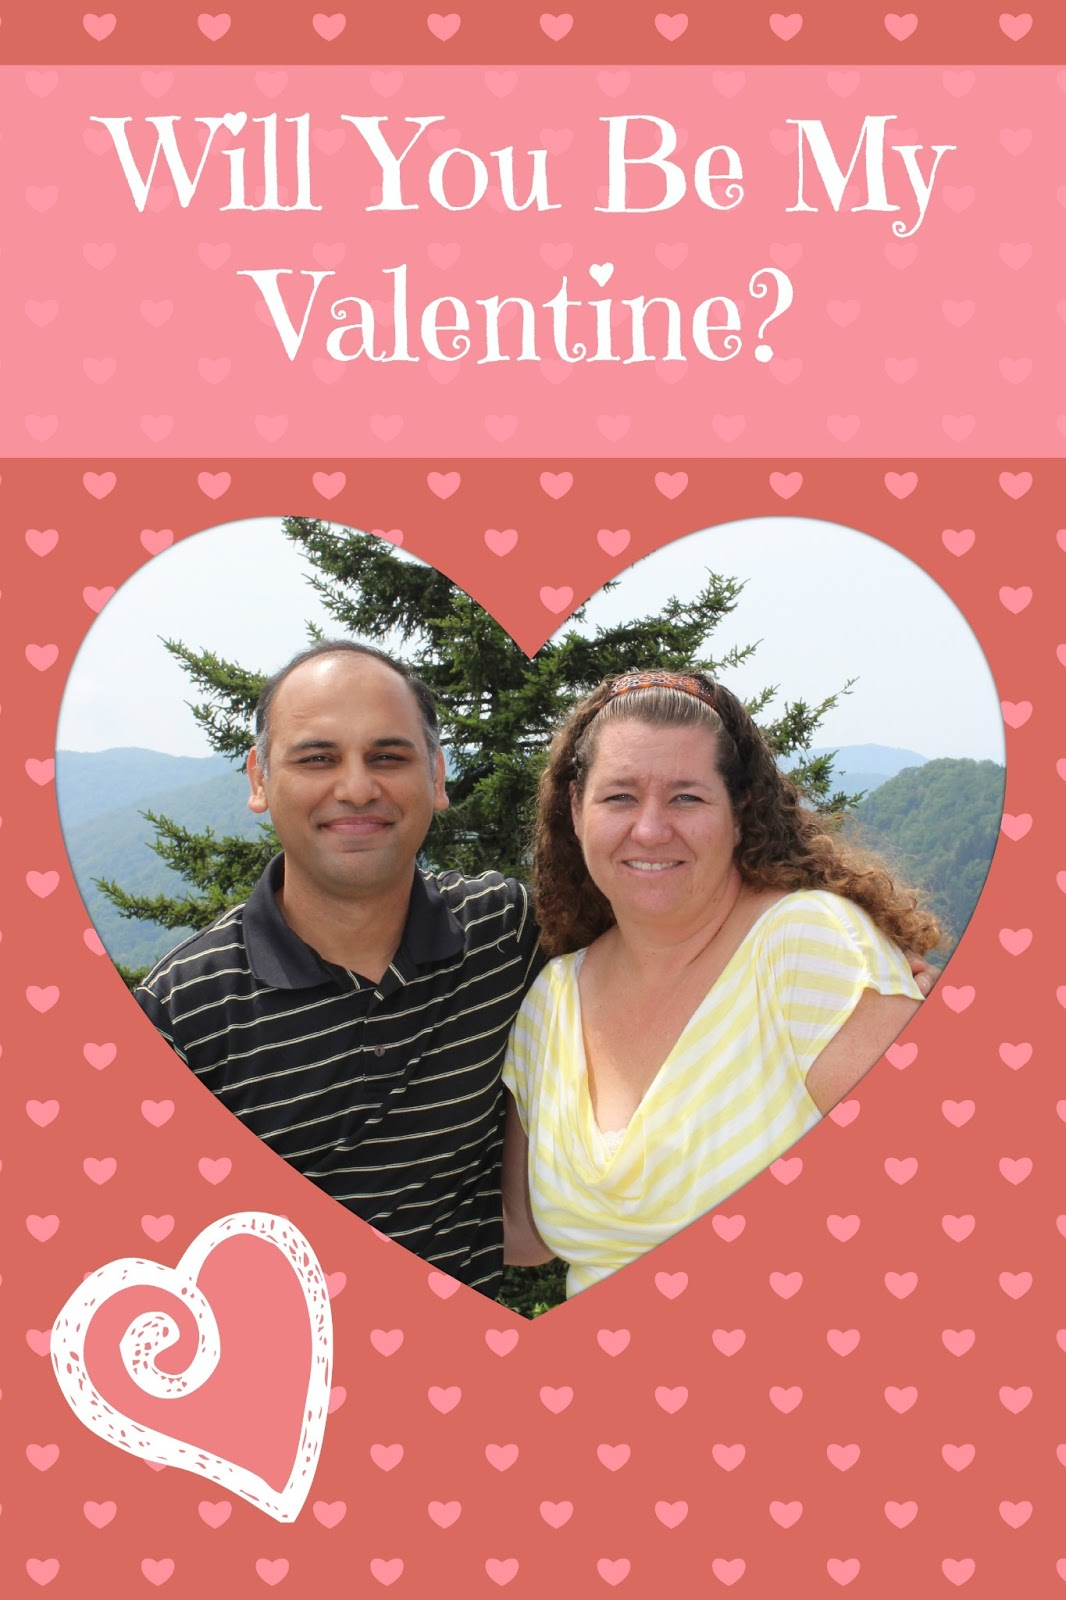 Using Picmonkey to create a personalized Valentines Day Card for your Husband